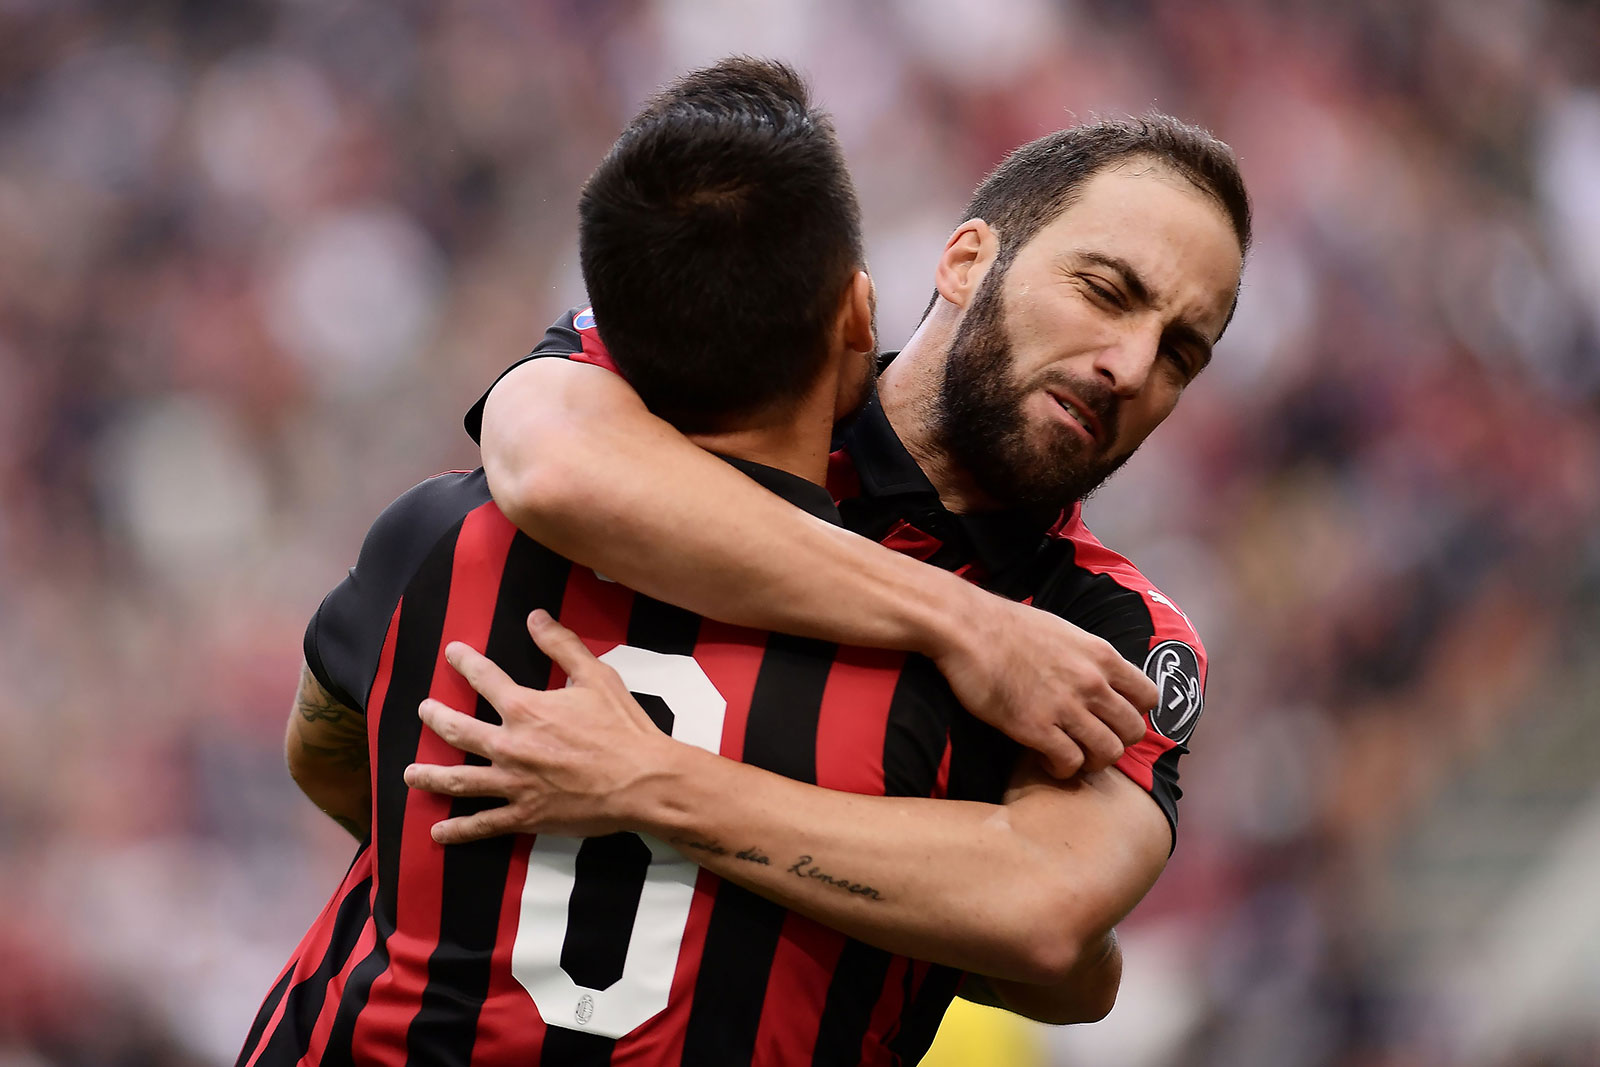 Gonzalo Higuain and Suso celebrating during Milan-Chievo at Stadio San Siro on October 7, 2018. (MARCO BERTORELLO/AFP/Getty Images)